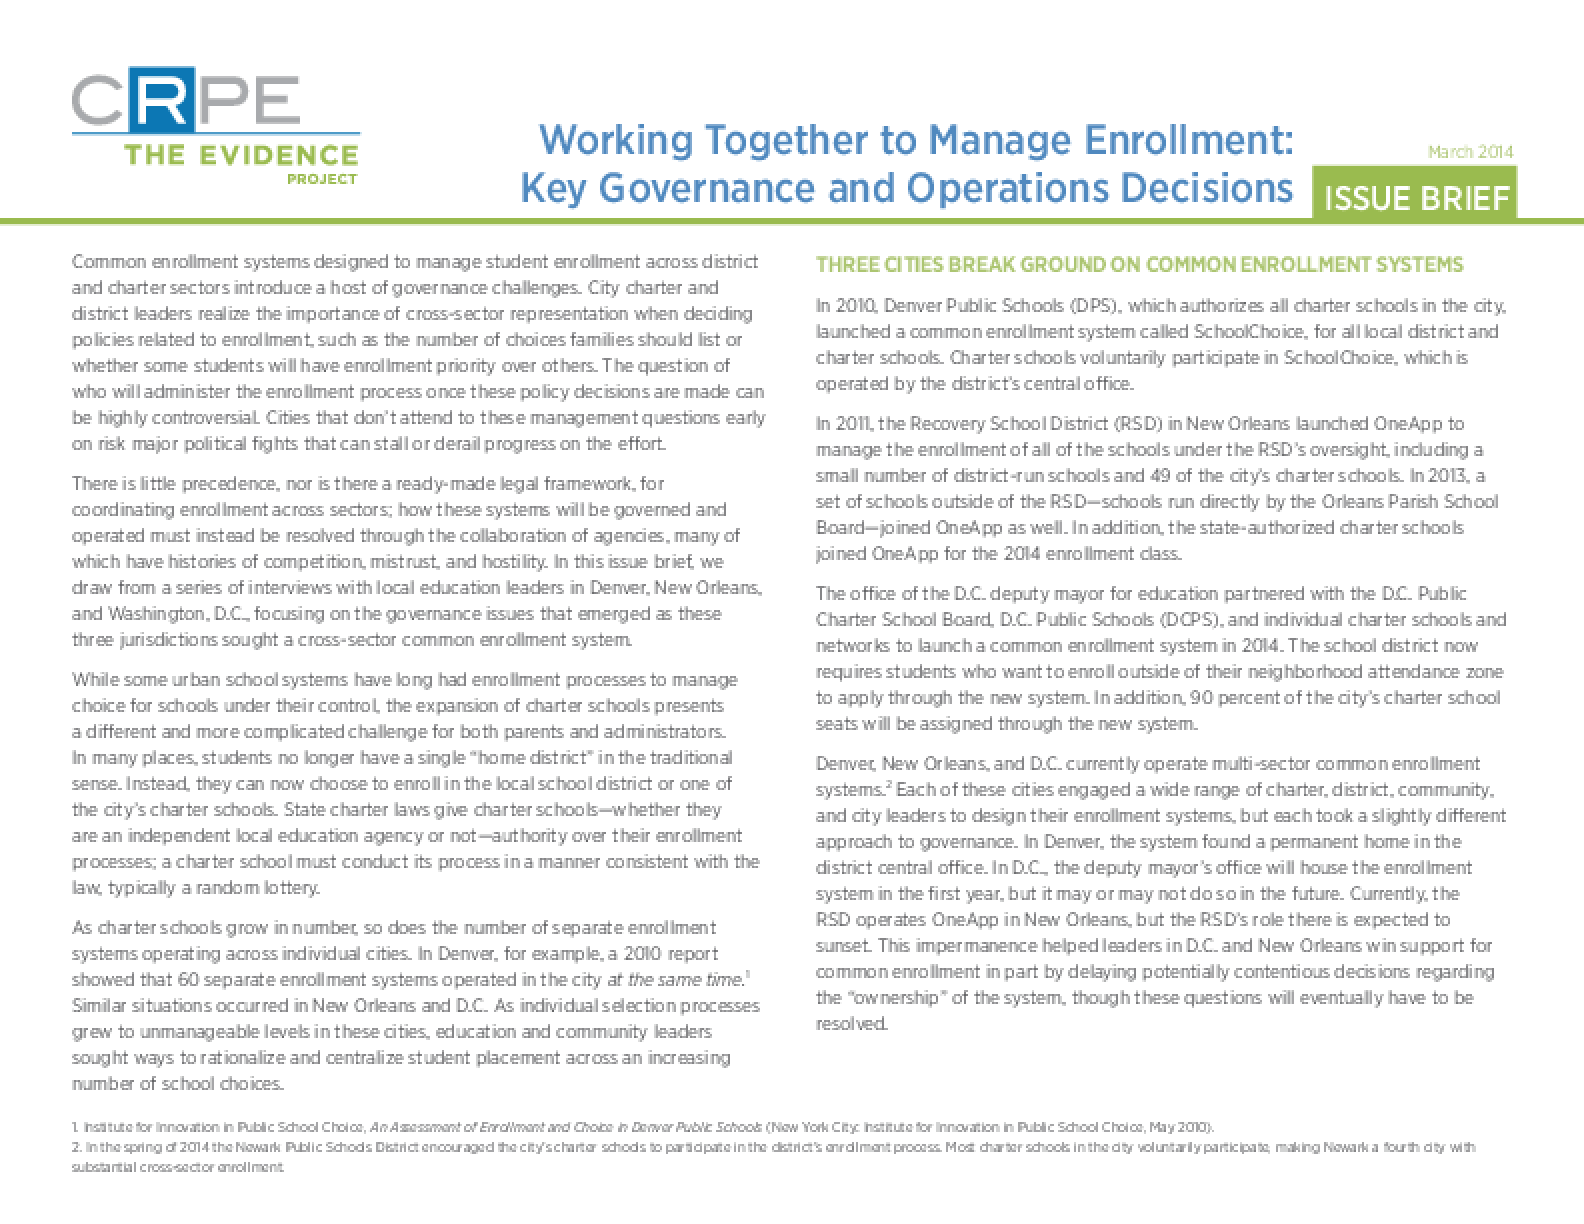 Working Together to Manage Enrollment: Key Governance and Operations Decisions